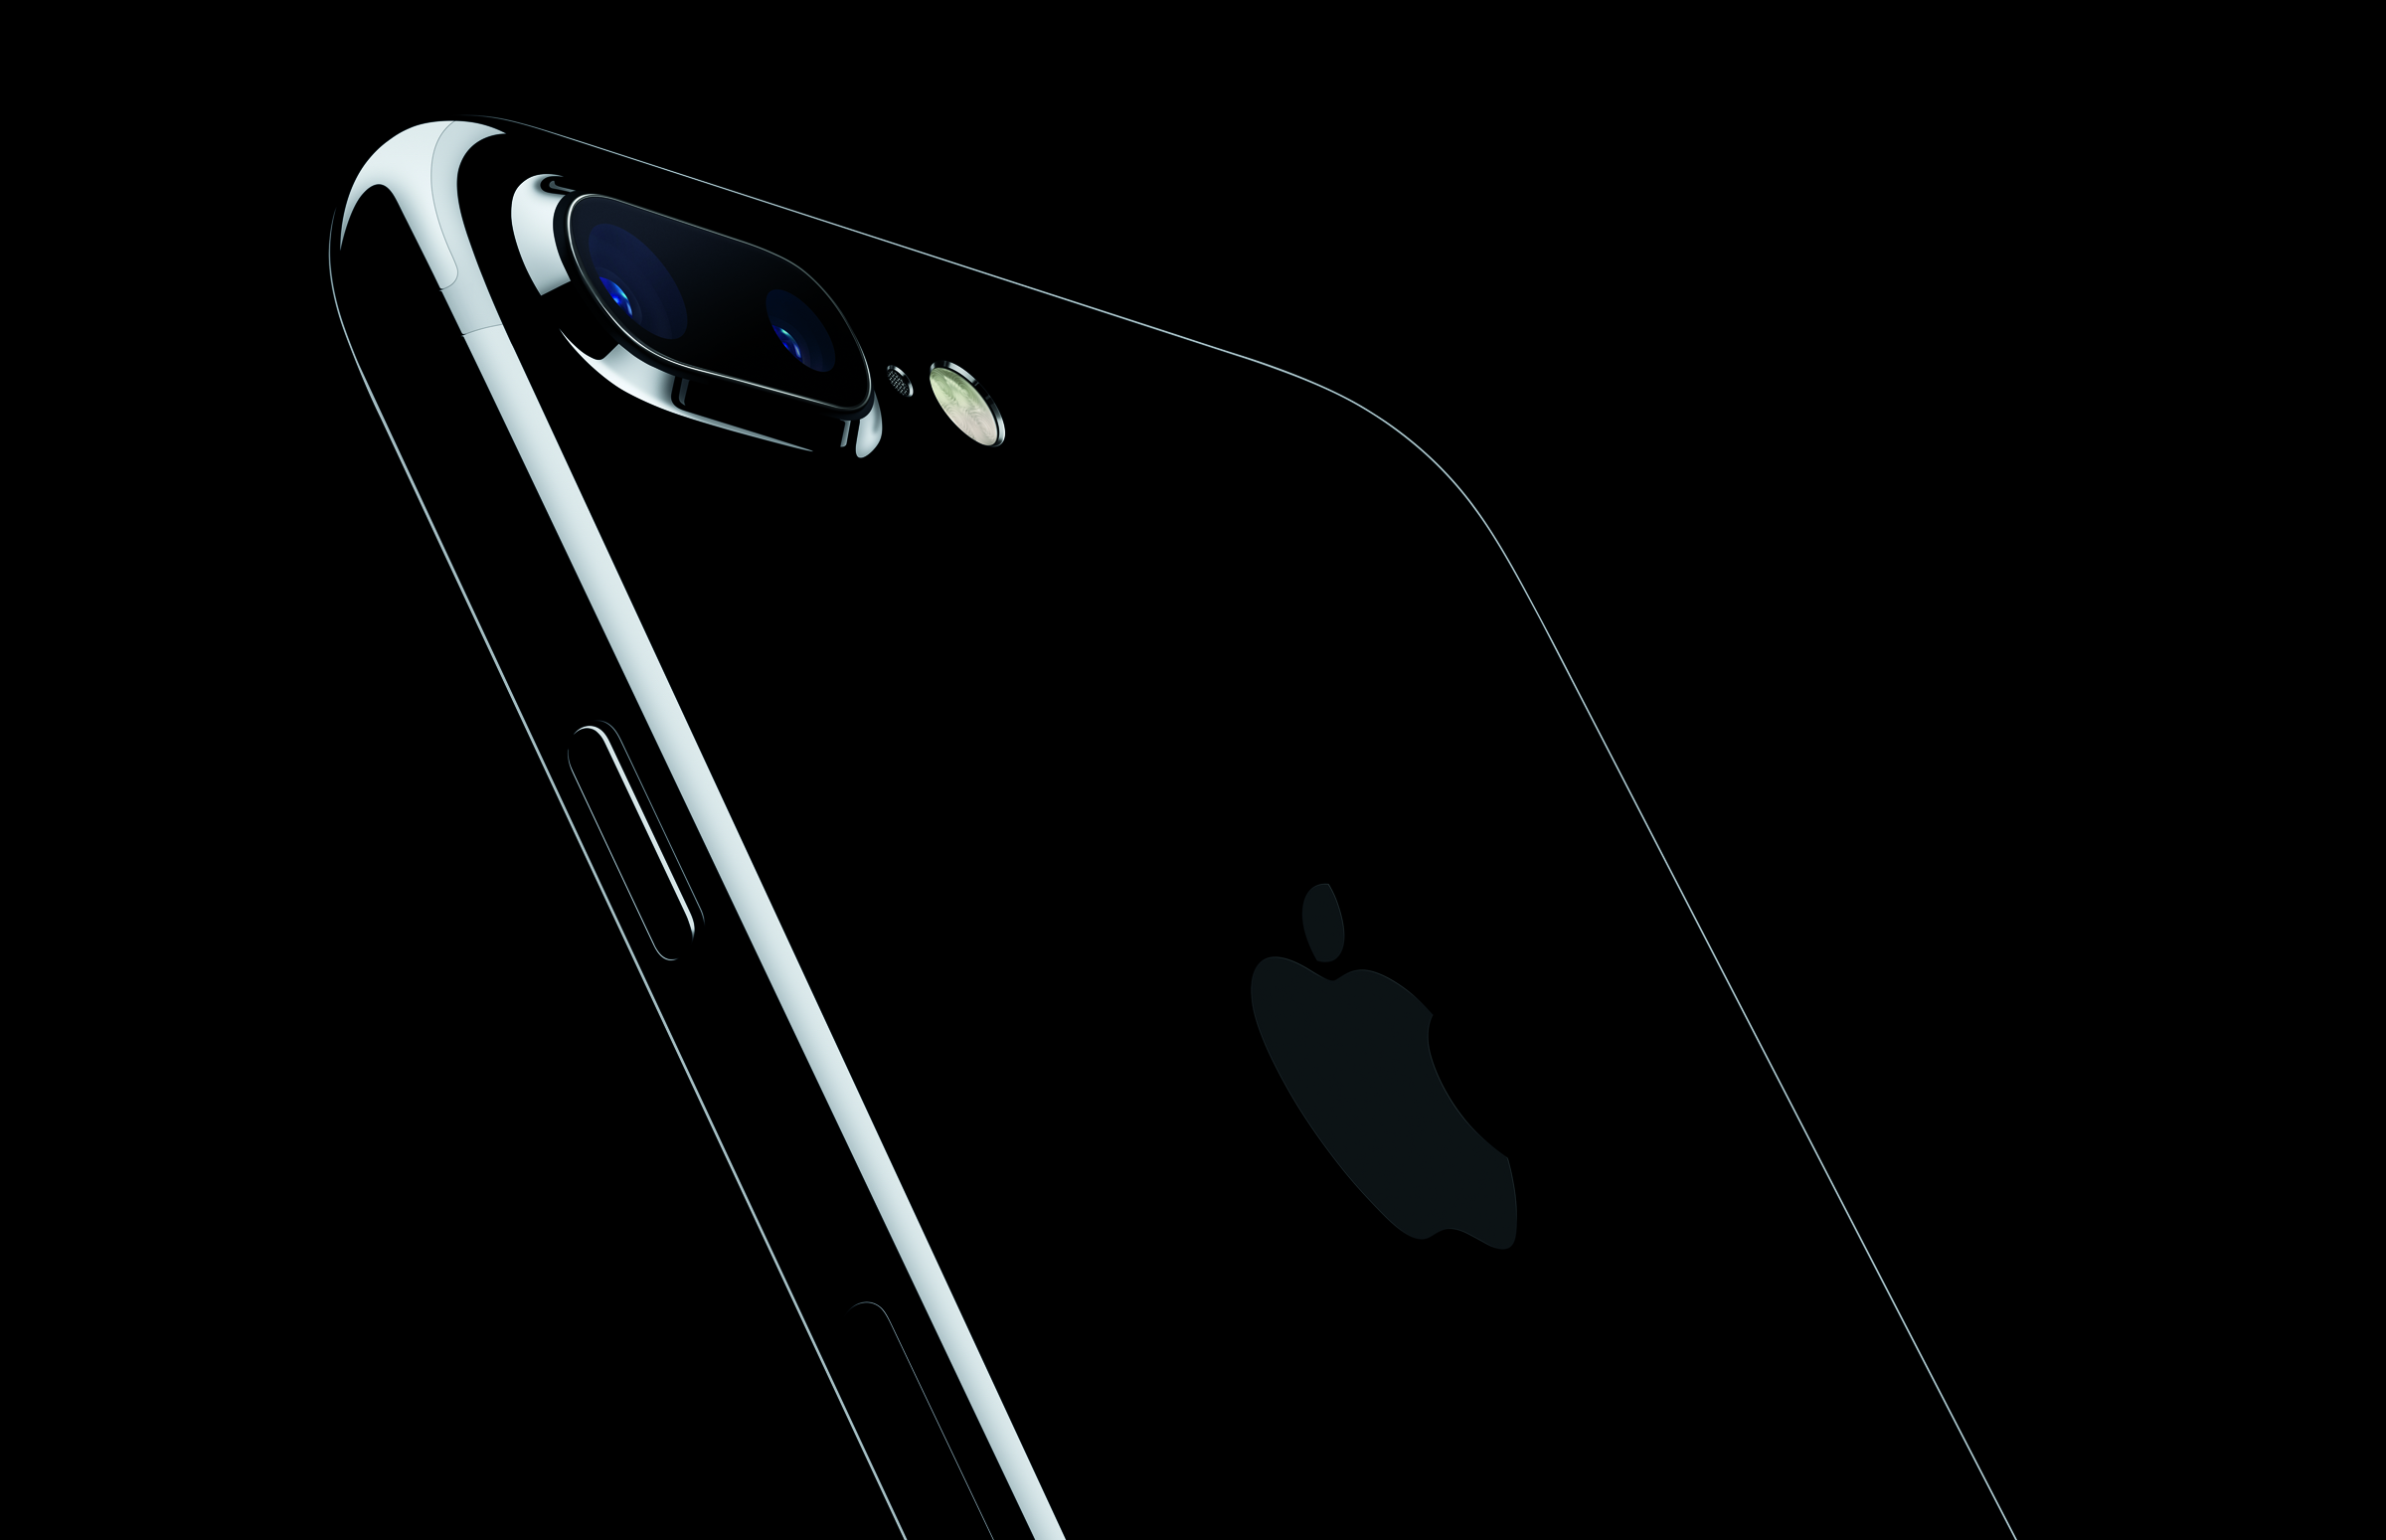 iPhone 7 Plus multi-sensor smartphone, and the 5 questions I asked Apple PR 2